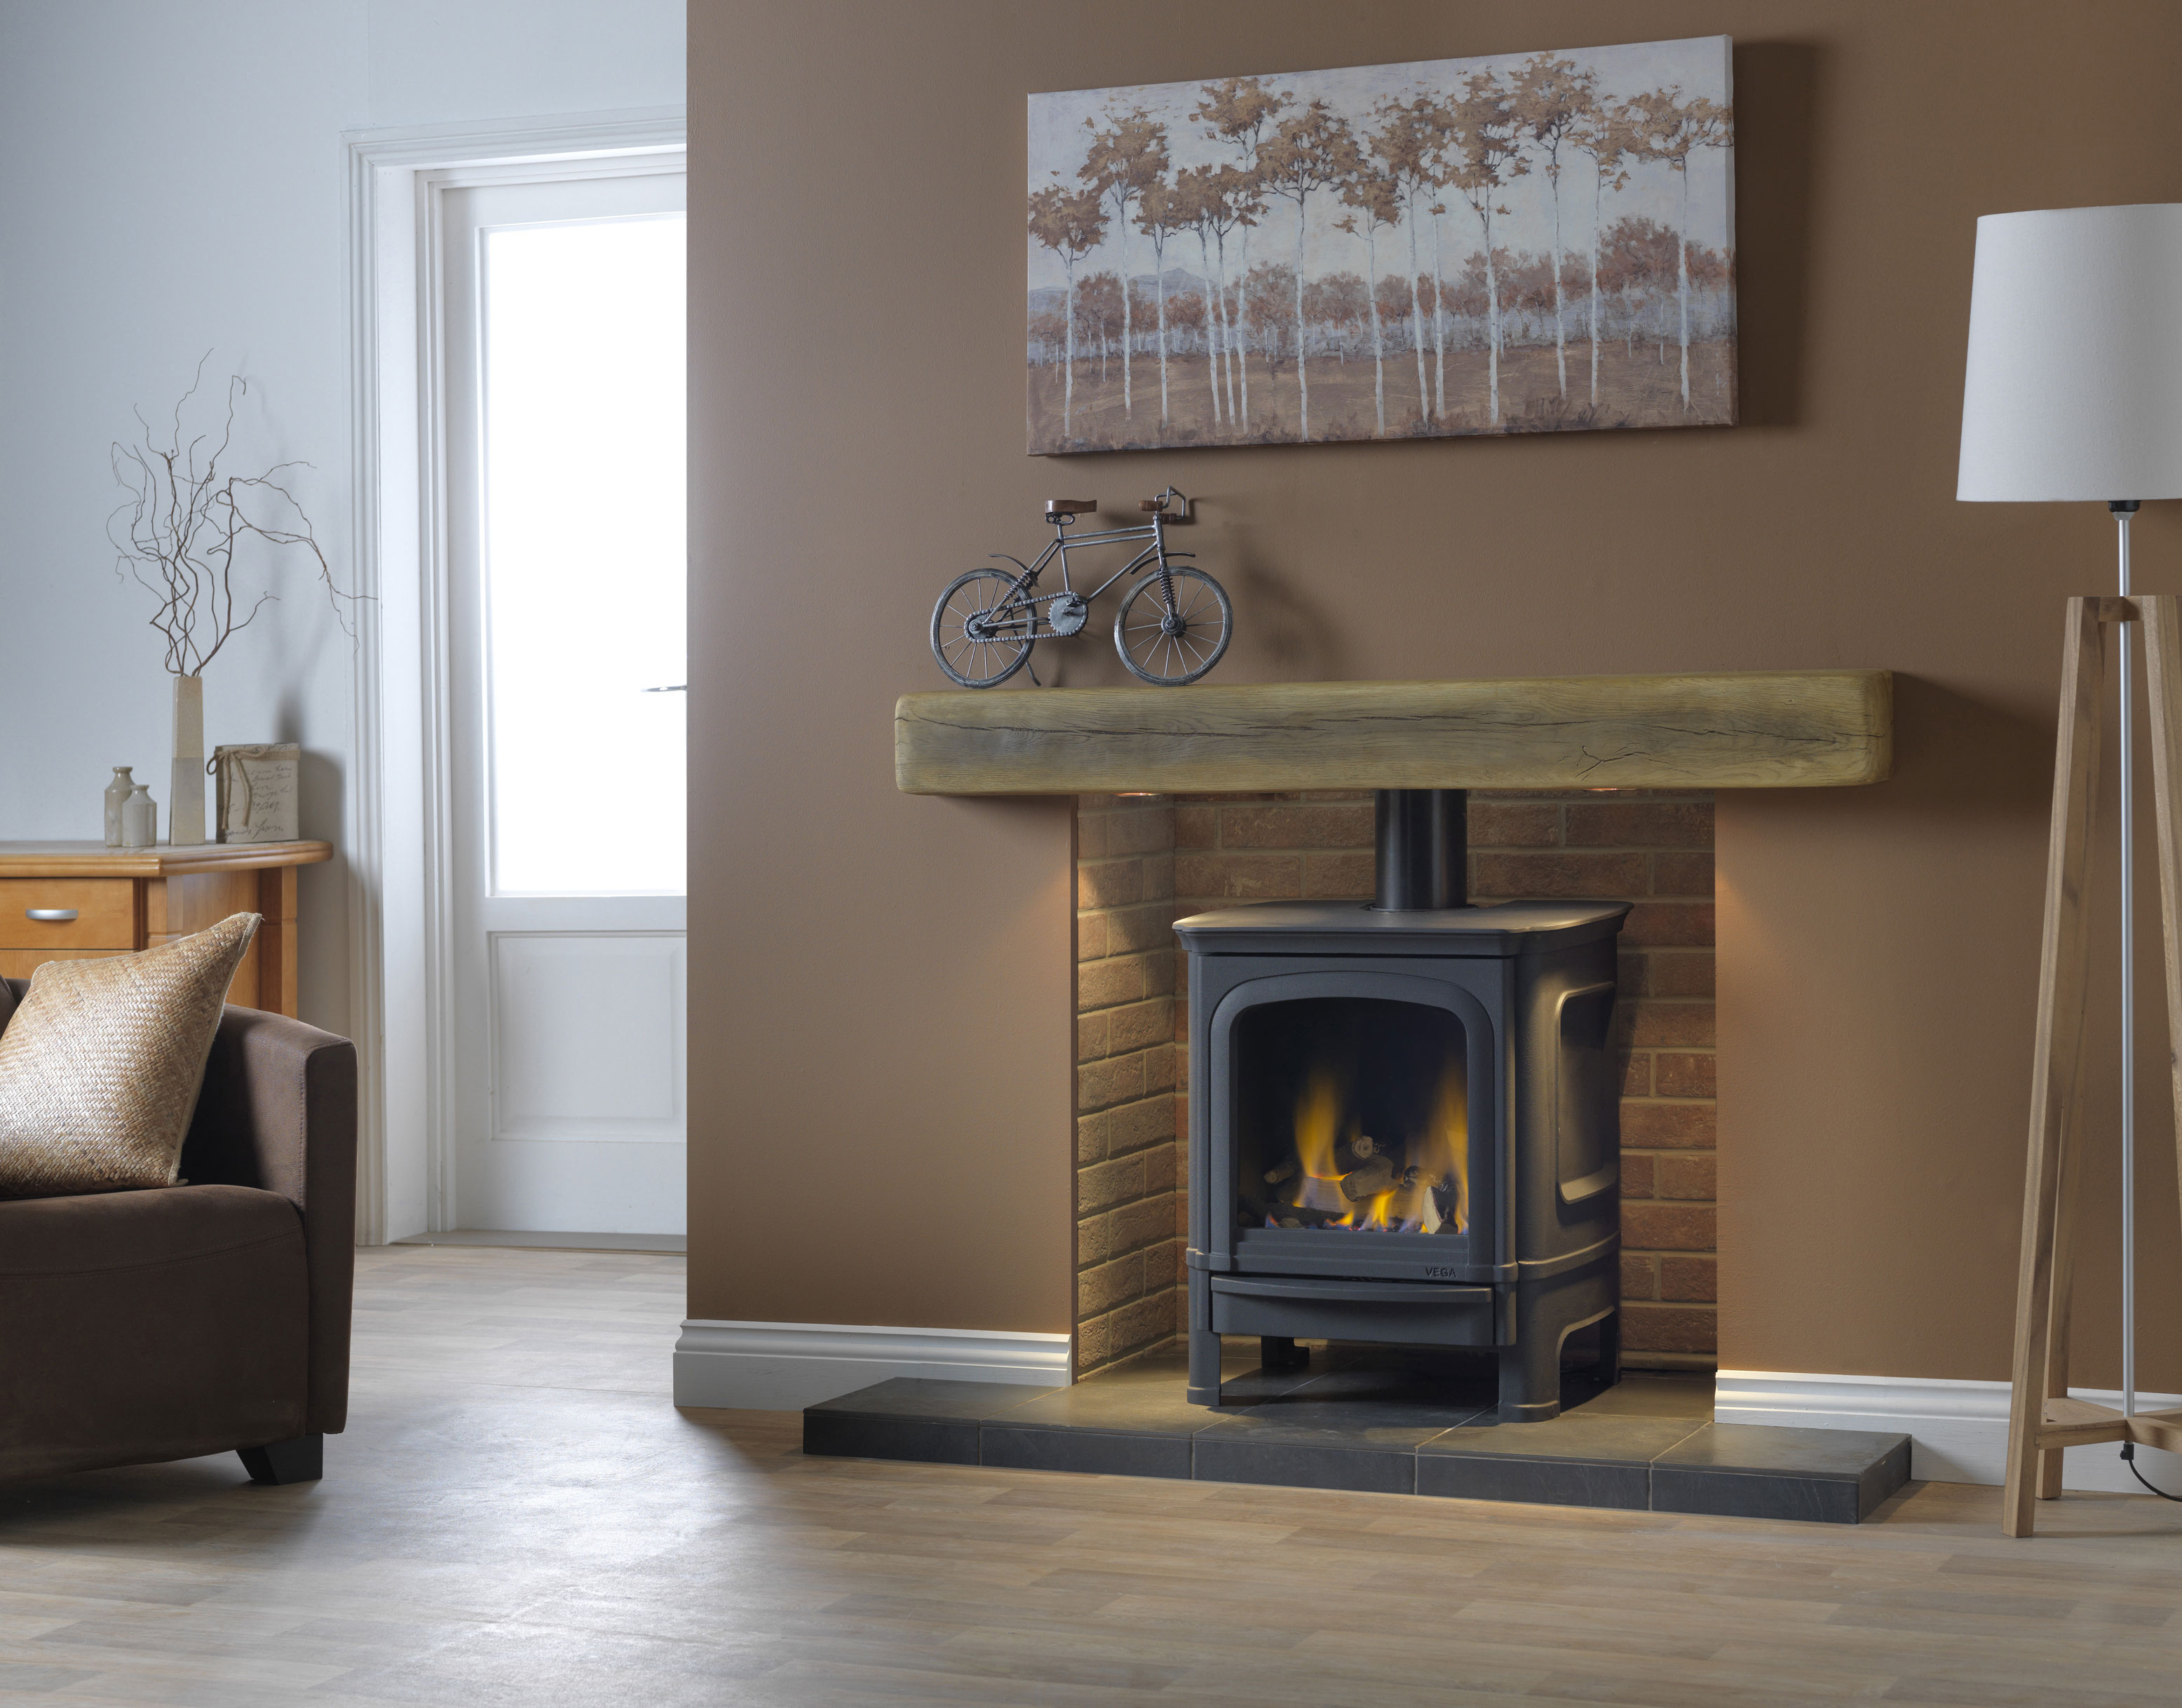 Penman vega b7 gas stove 5 4kw on live display in our showroom